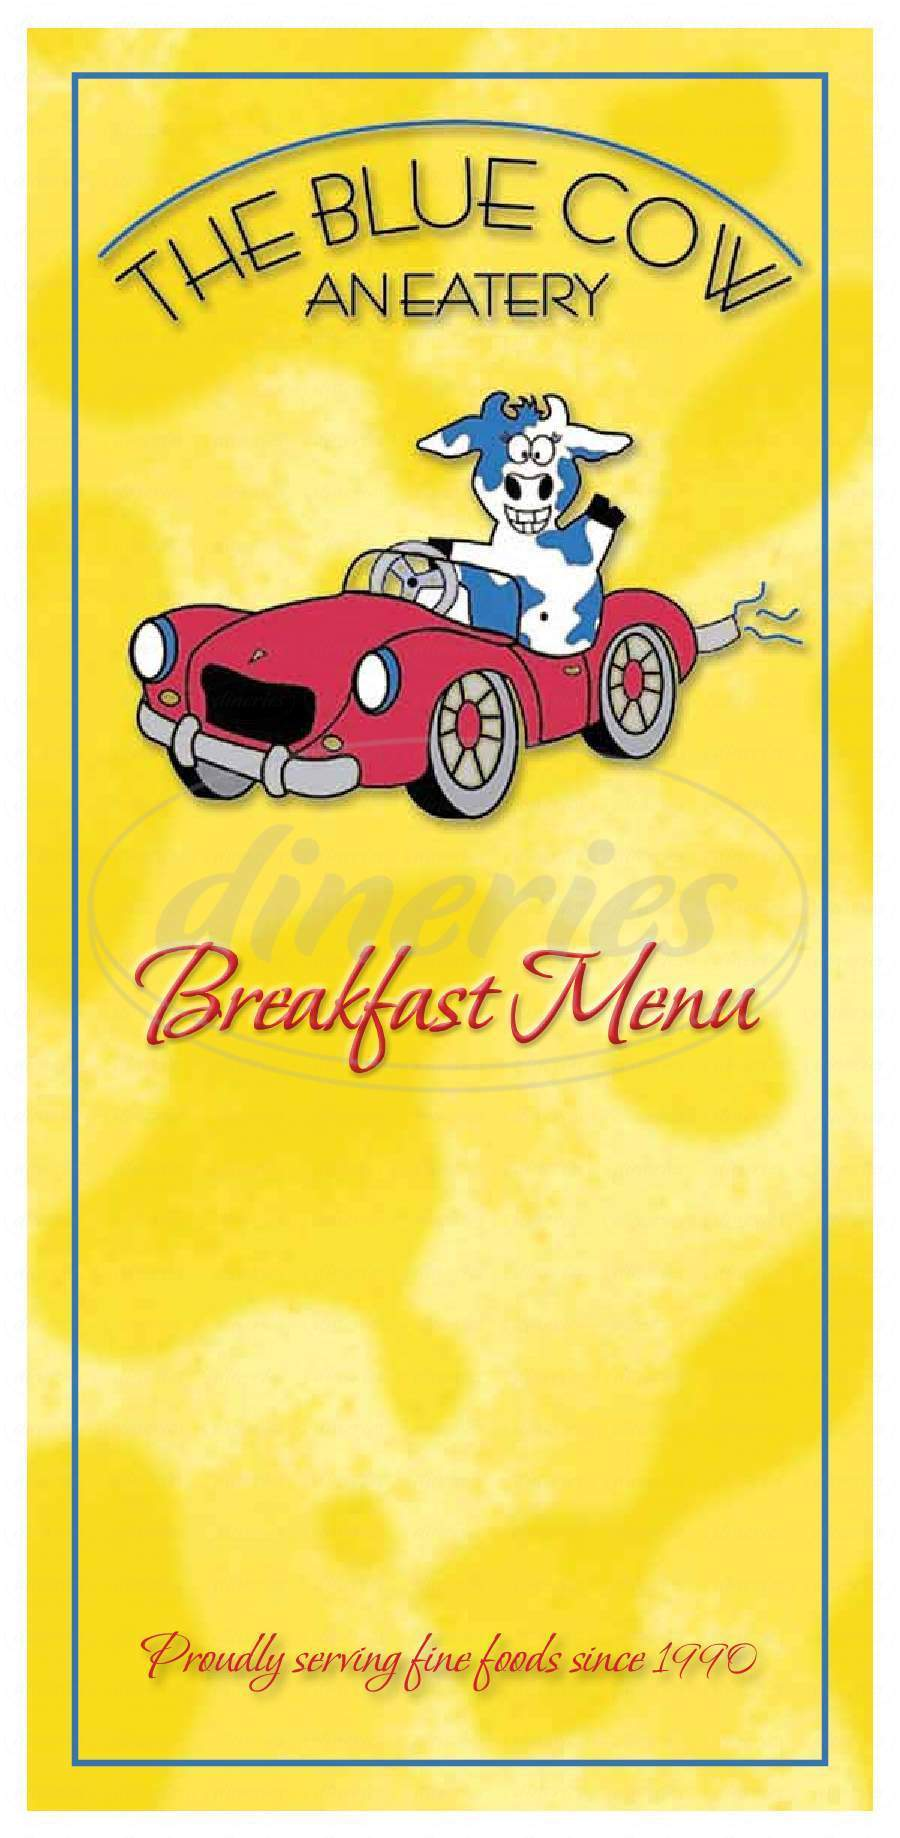 menu for The Blue Cow